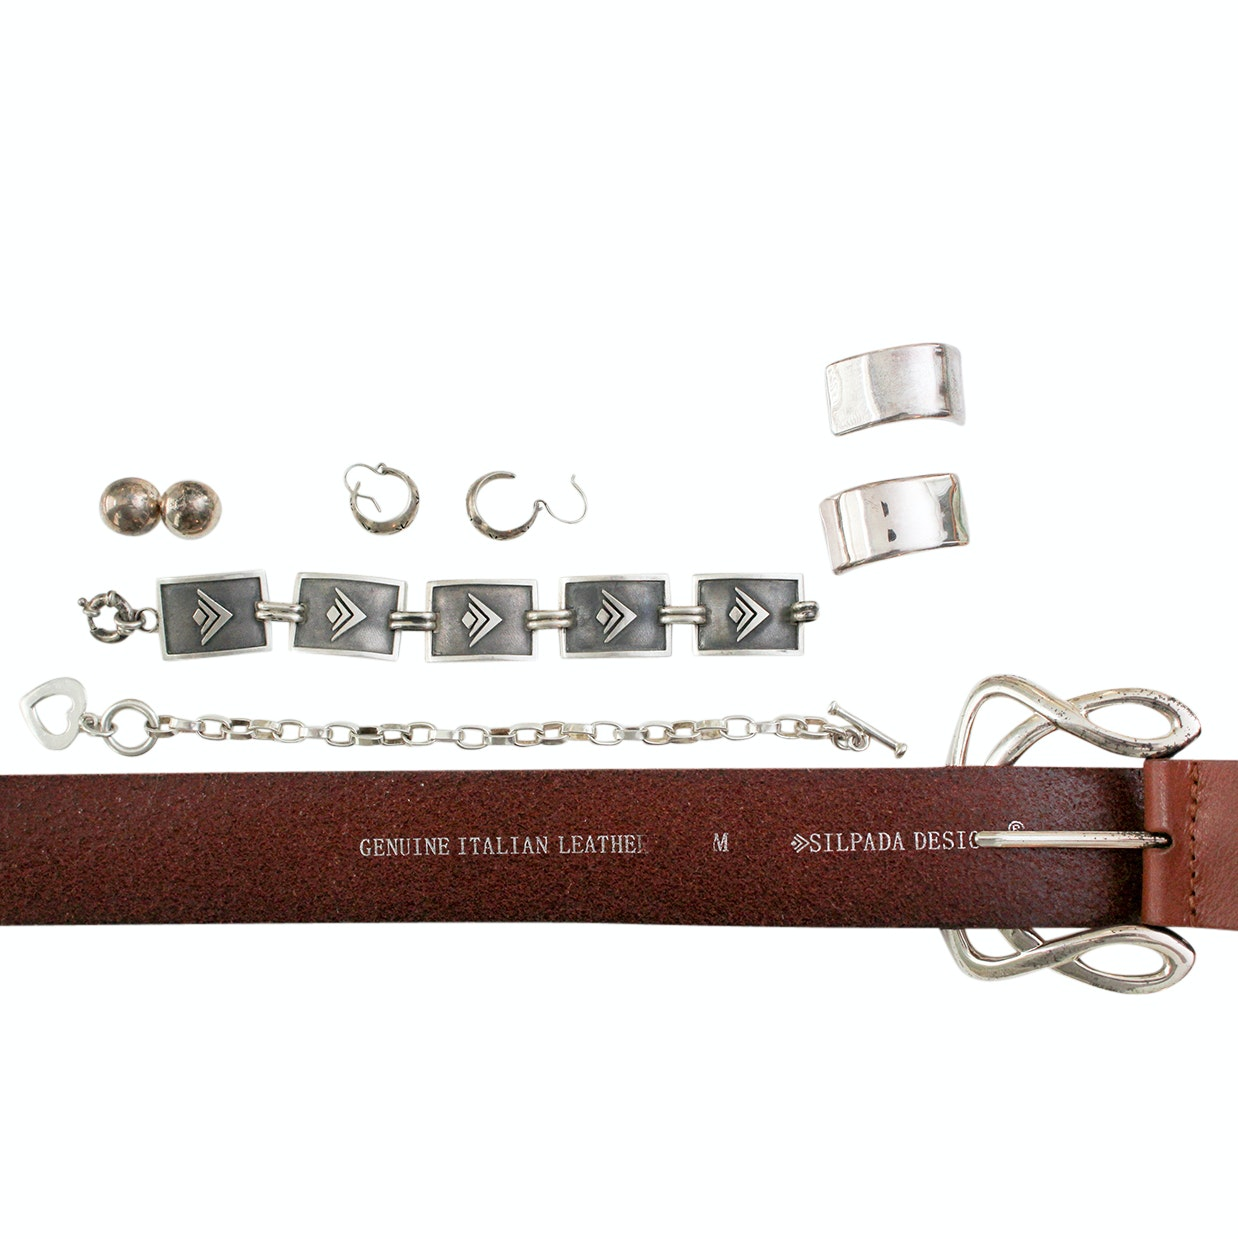 Sterling Silver Silpada Jewelry and Silpada Belt with Silver Tone Buckle